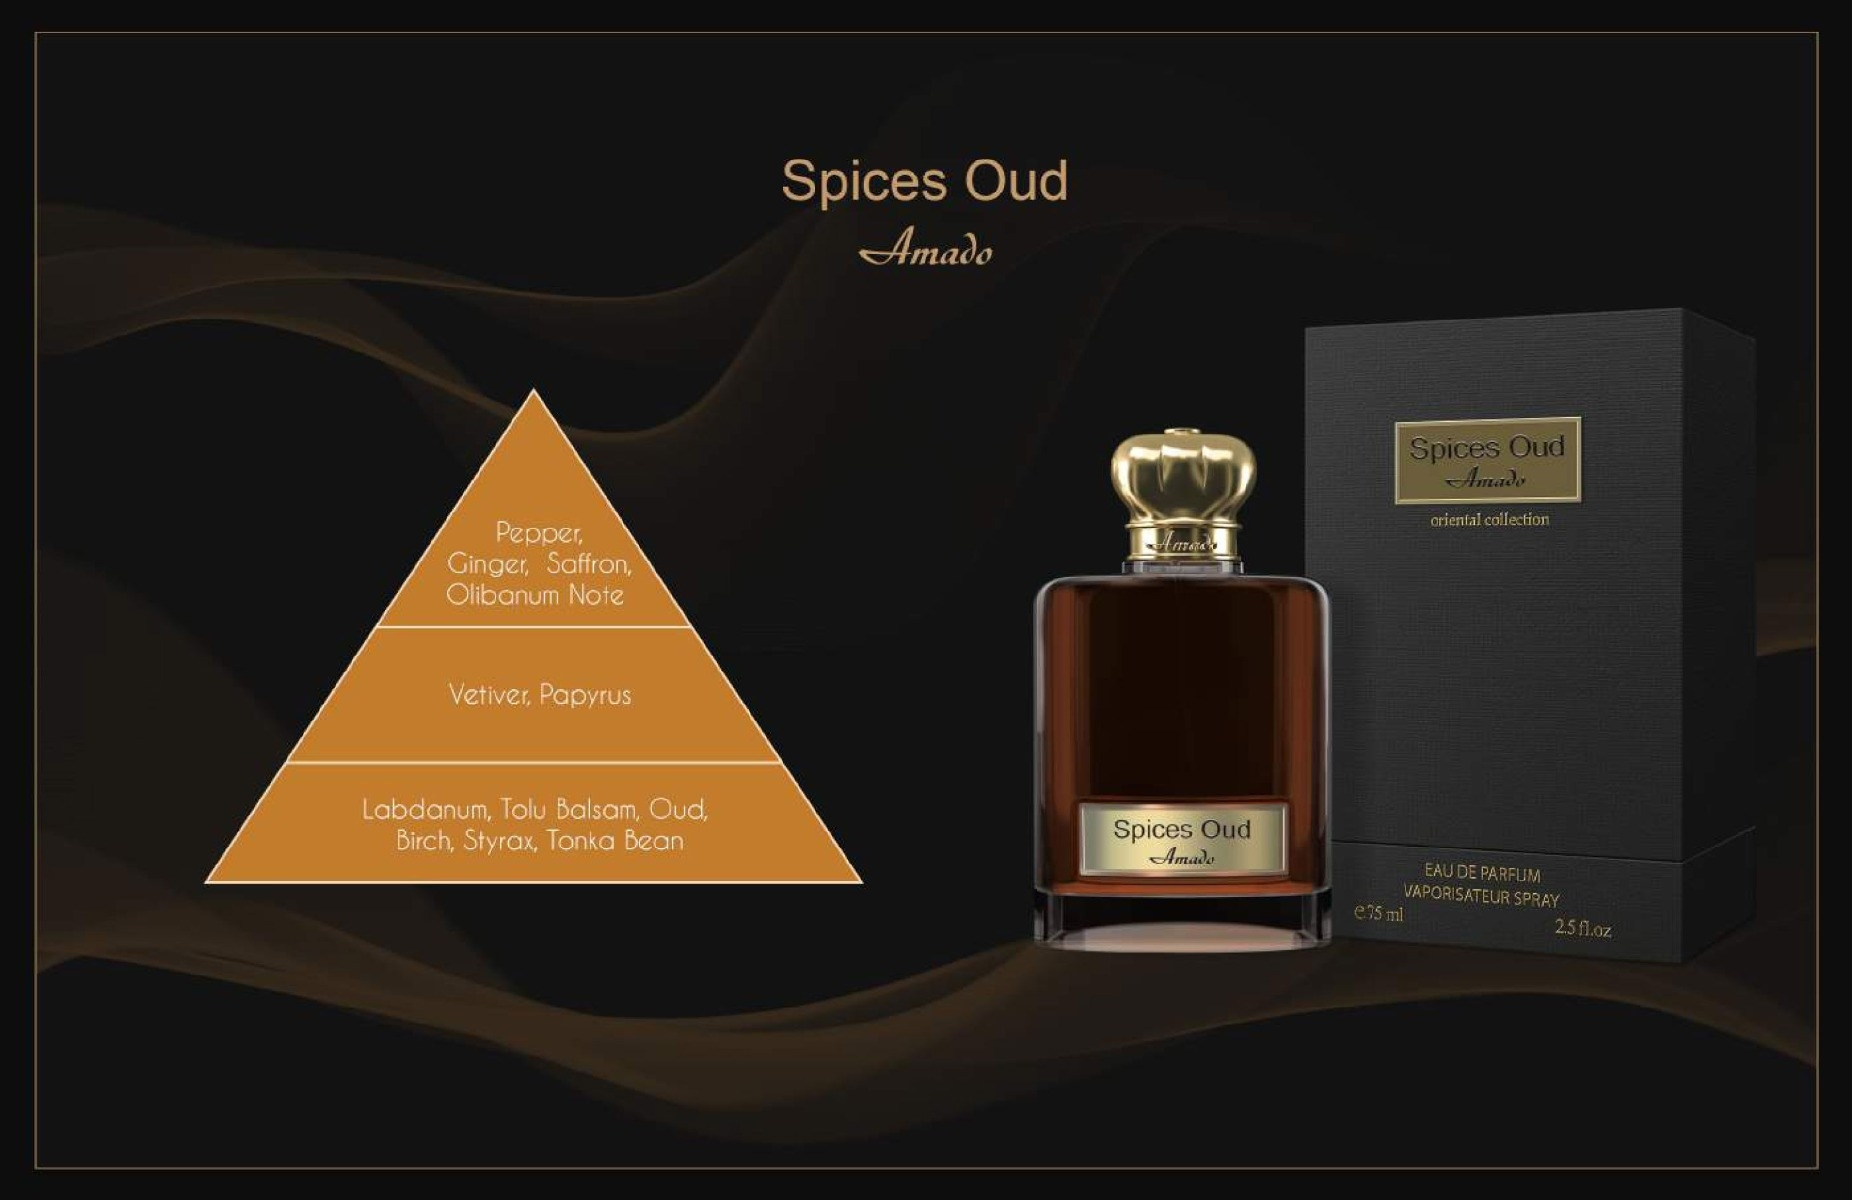 Spices Oud